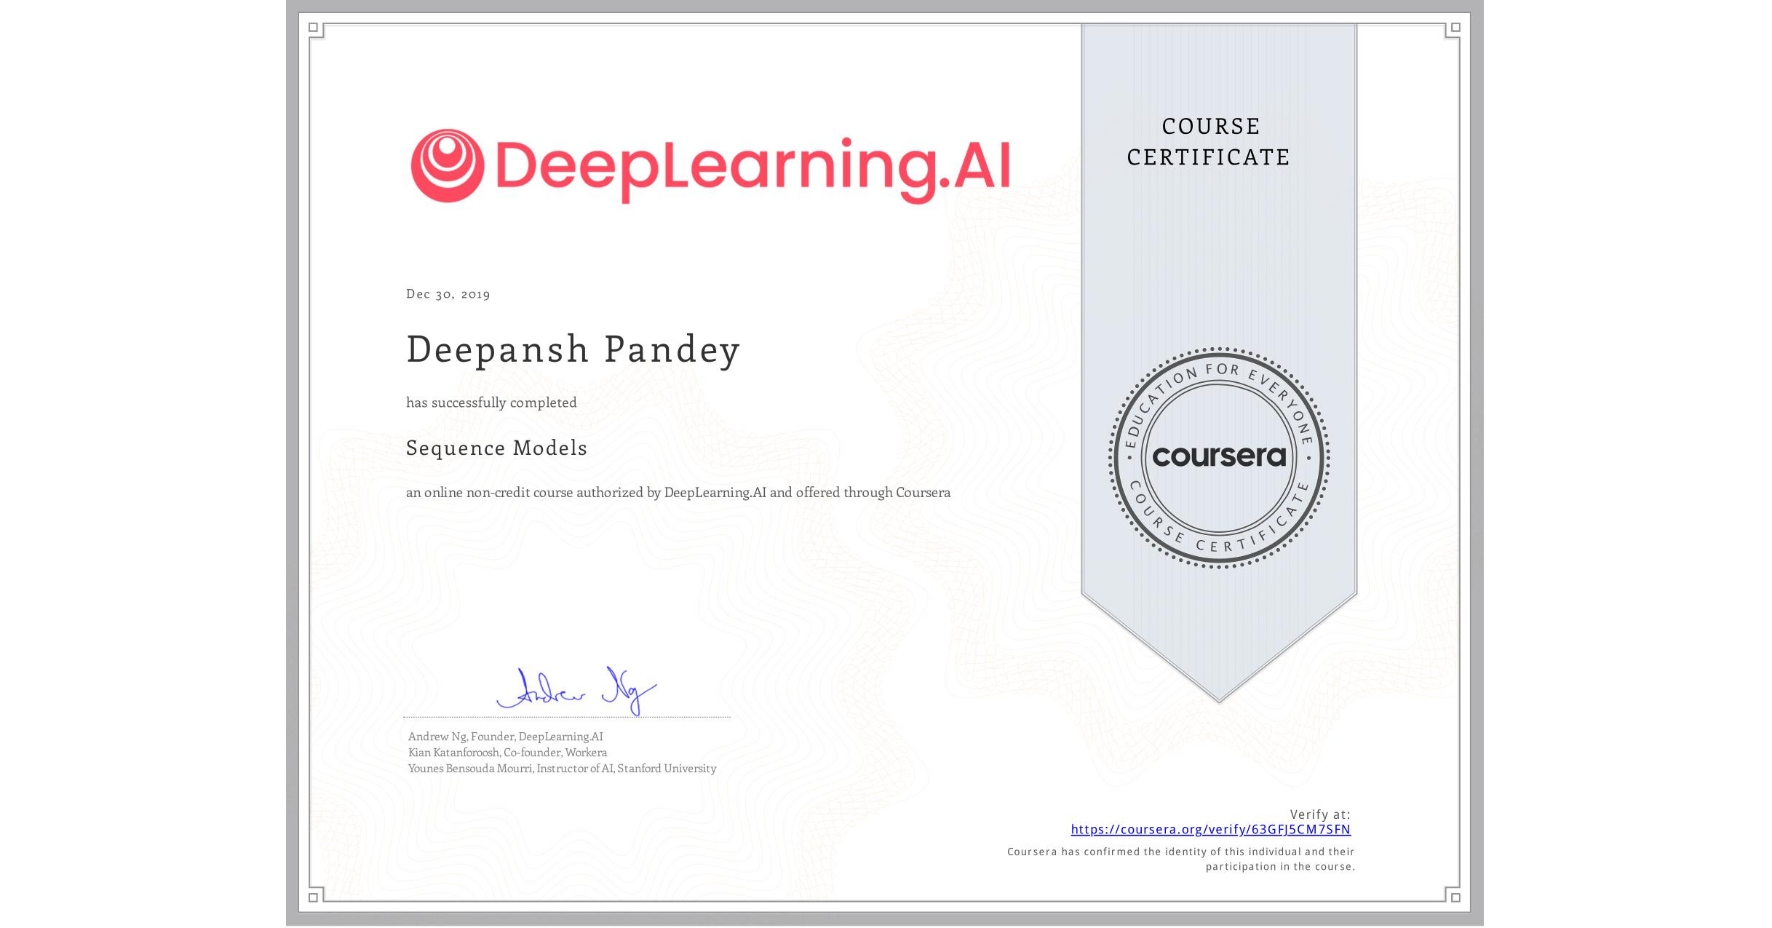 View certificate for Deepansh Pandey, Sequence Models, an online non-credit course authorized by DeepLearning.AI and offered through Coursera